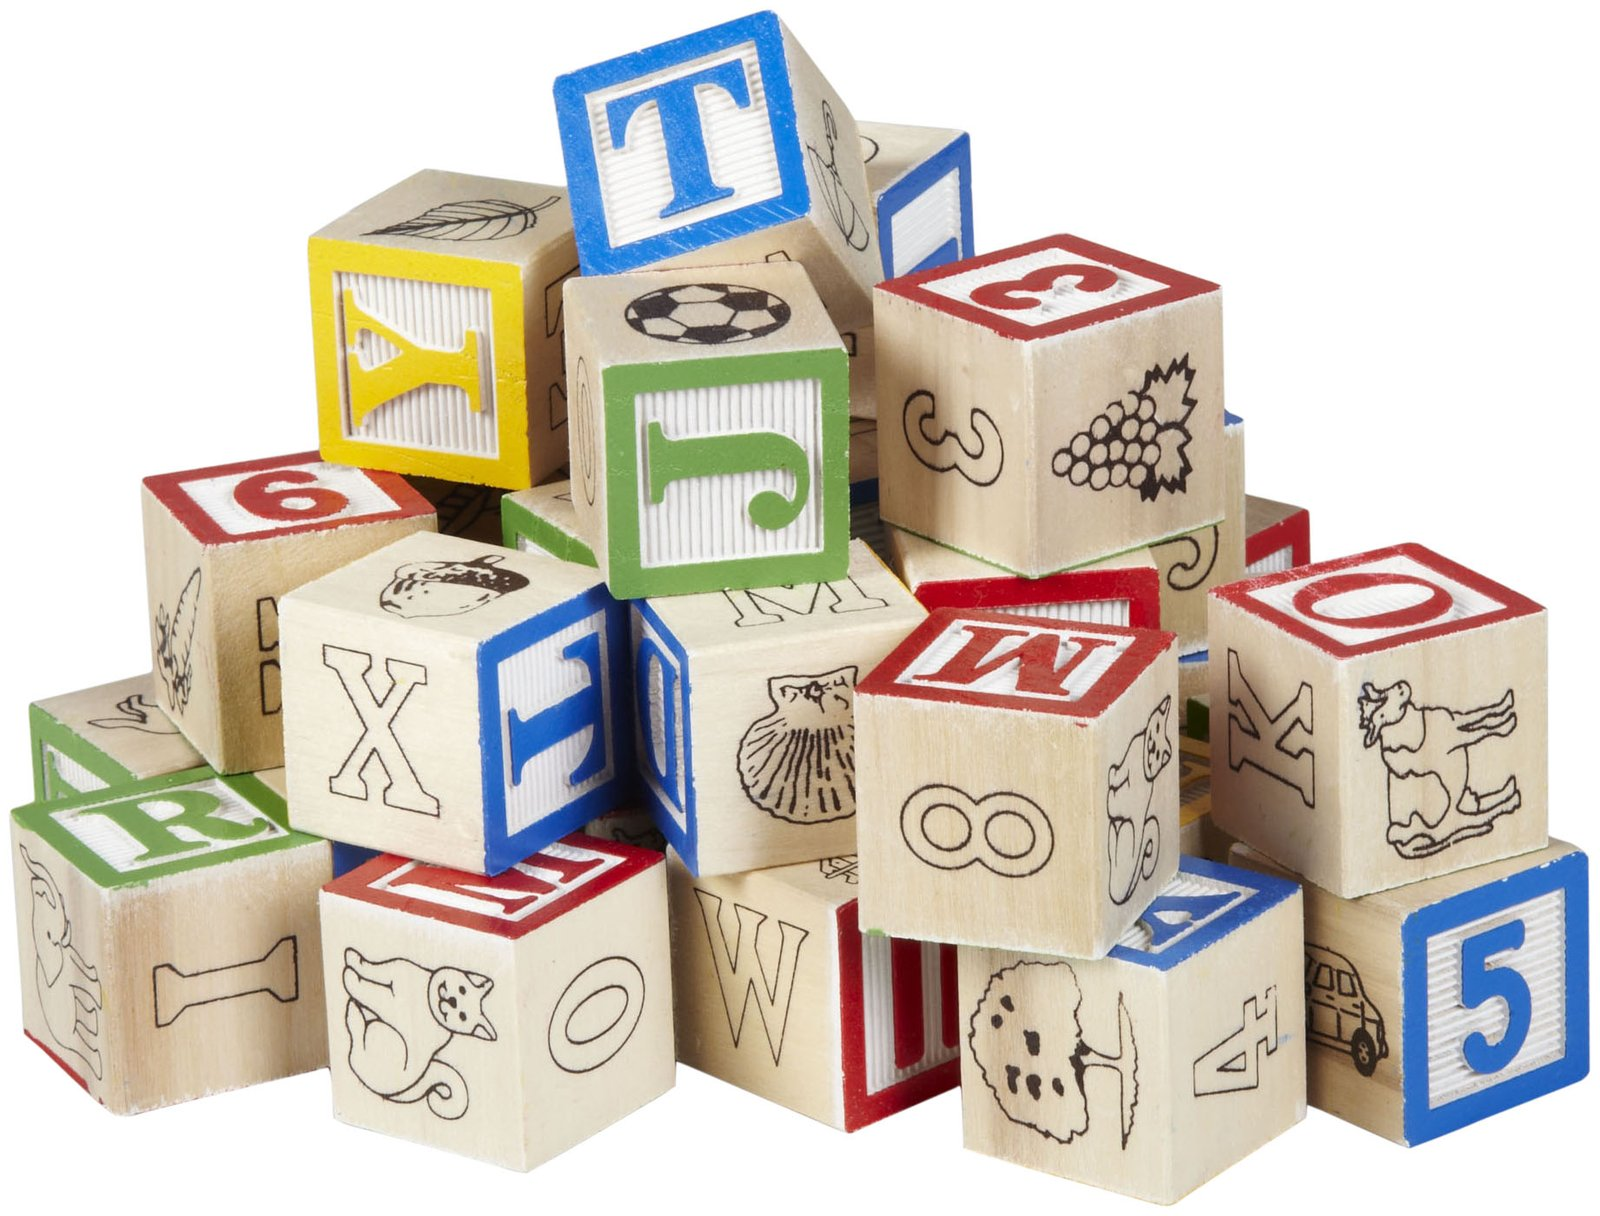 Wooden Blocks For Toddlers ~ Pro educational toys best for visually impaired